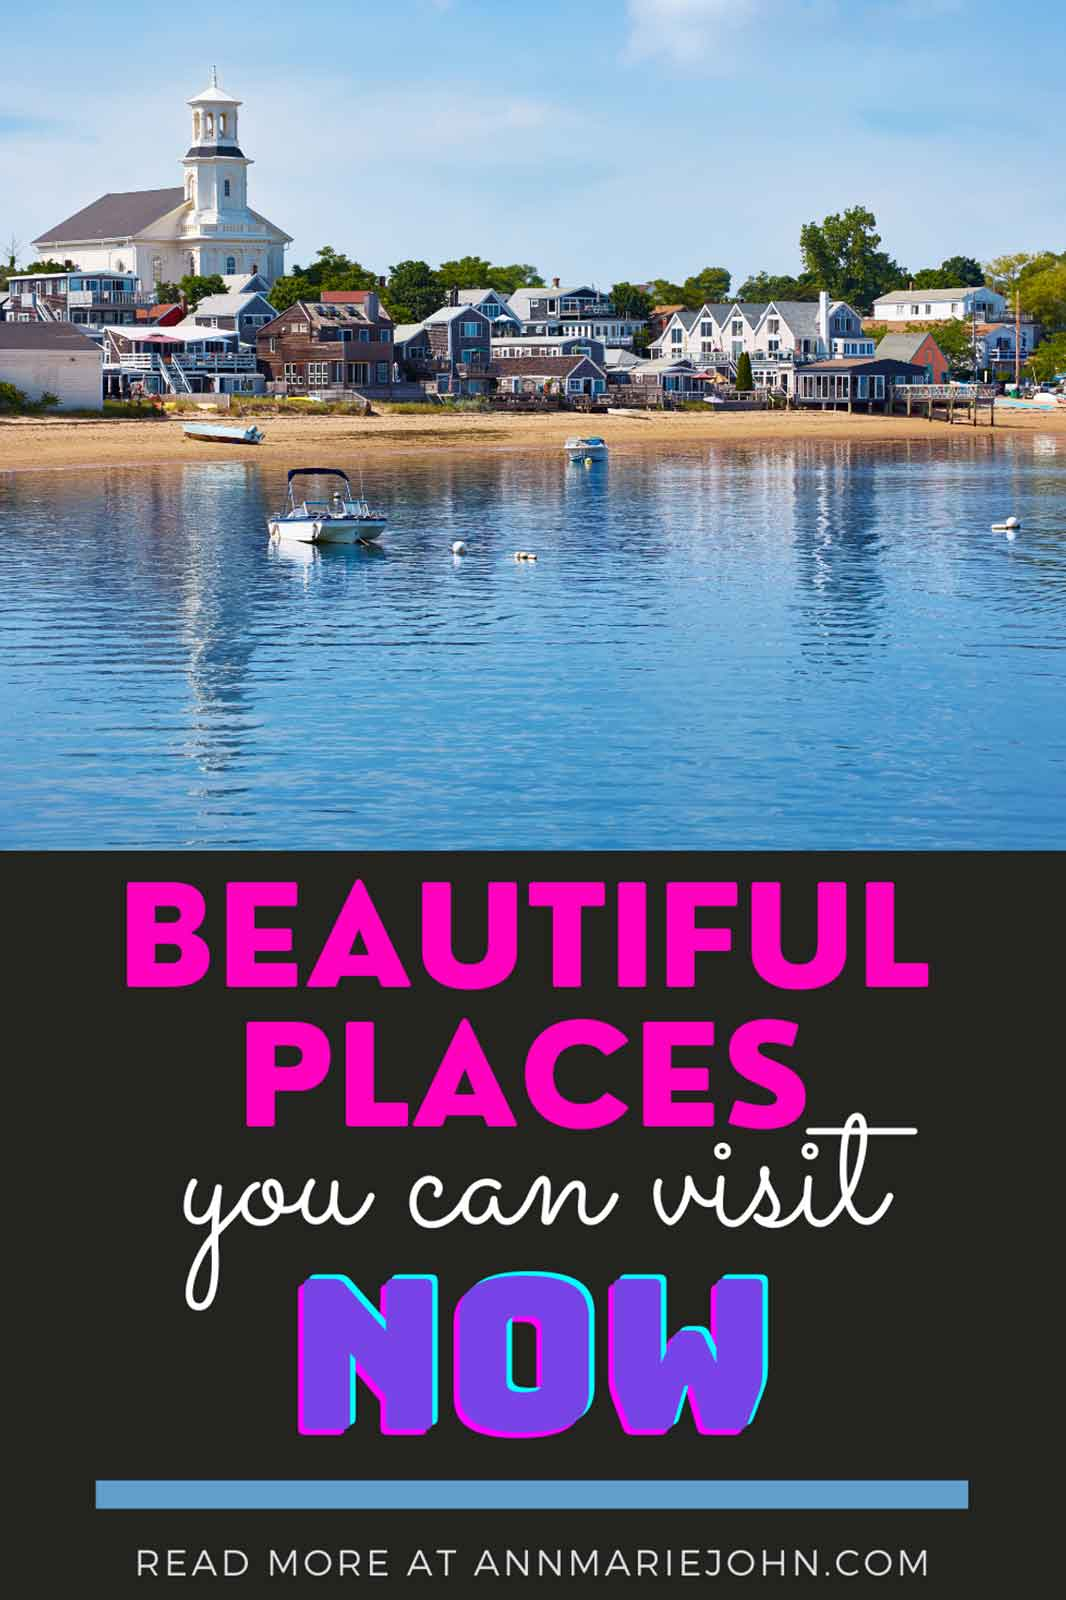 Beautiful Places you can visit NOW